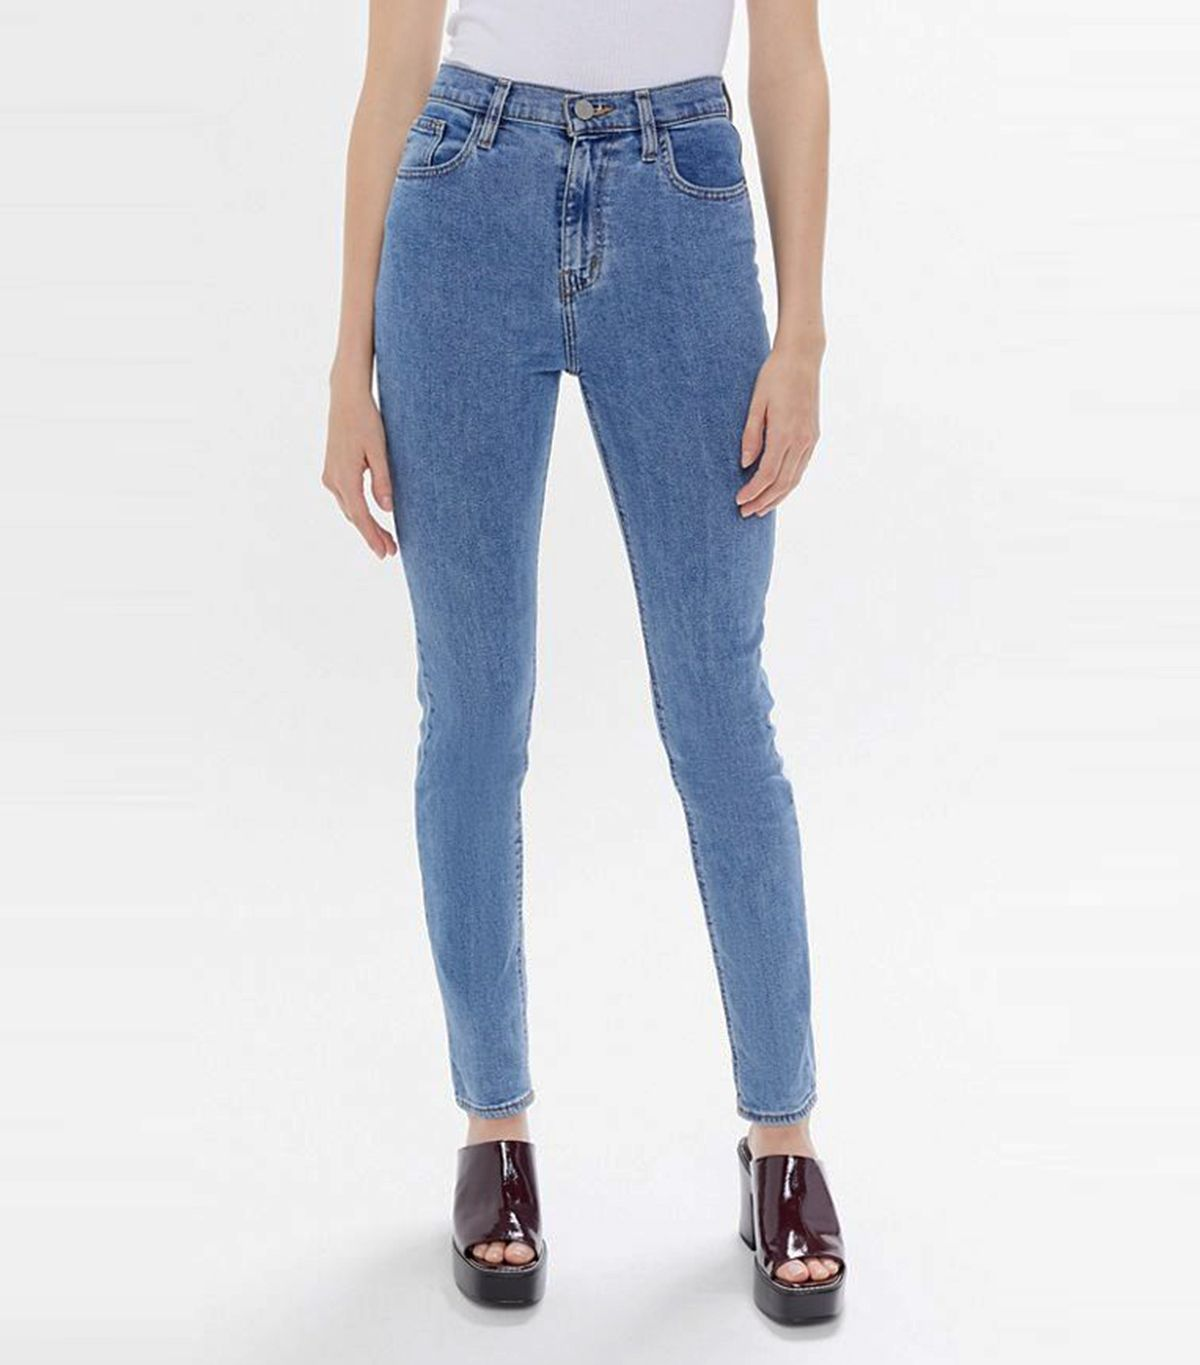 What Hourglass Figures Should Look for When Denim Shopping